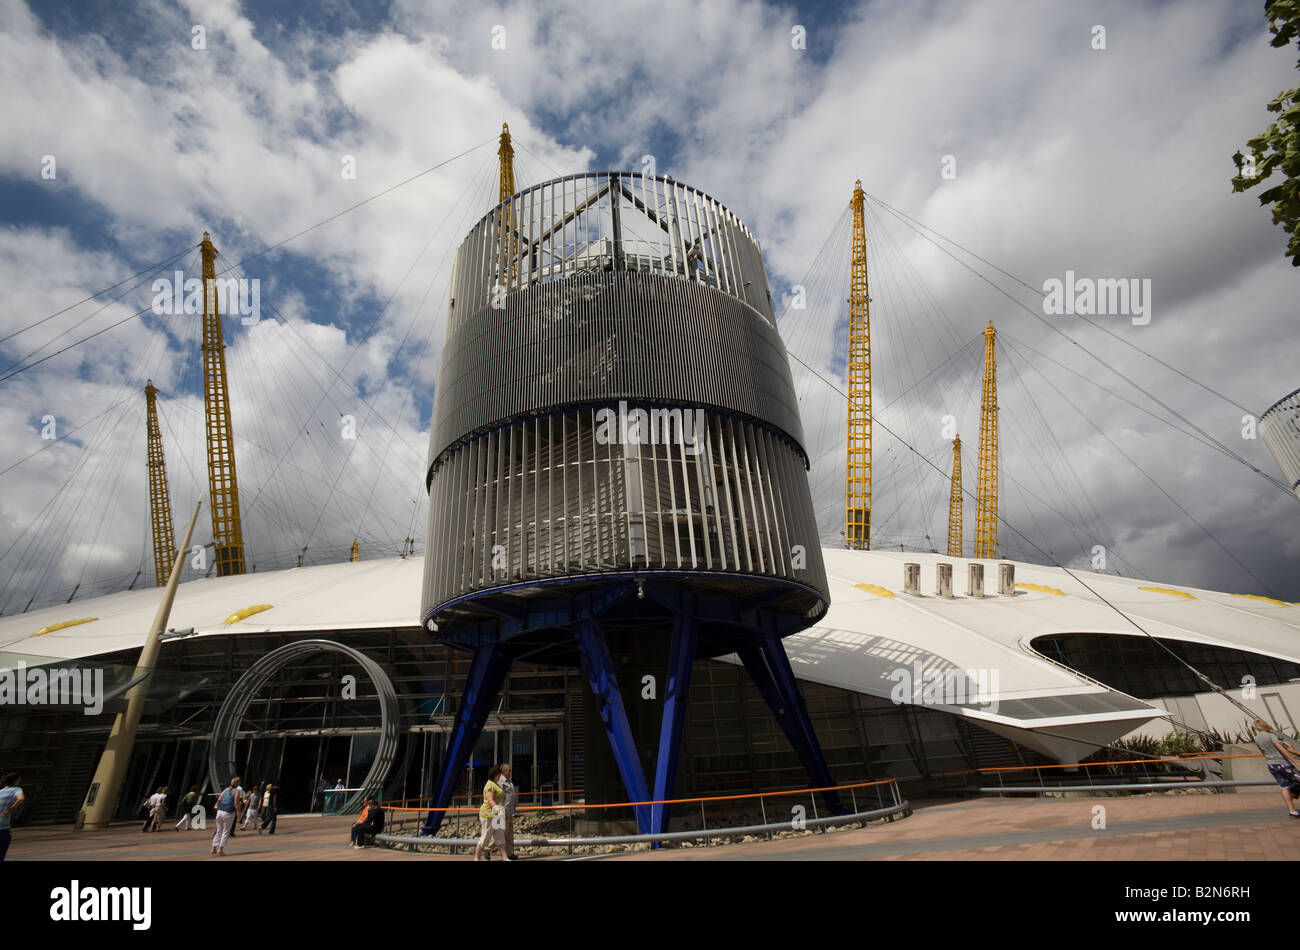 Exterior of refurbished O2 Dome Greewich GB UK - Stock Image